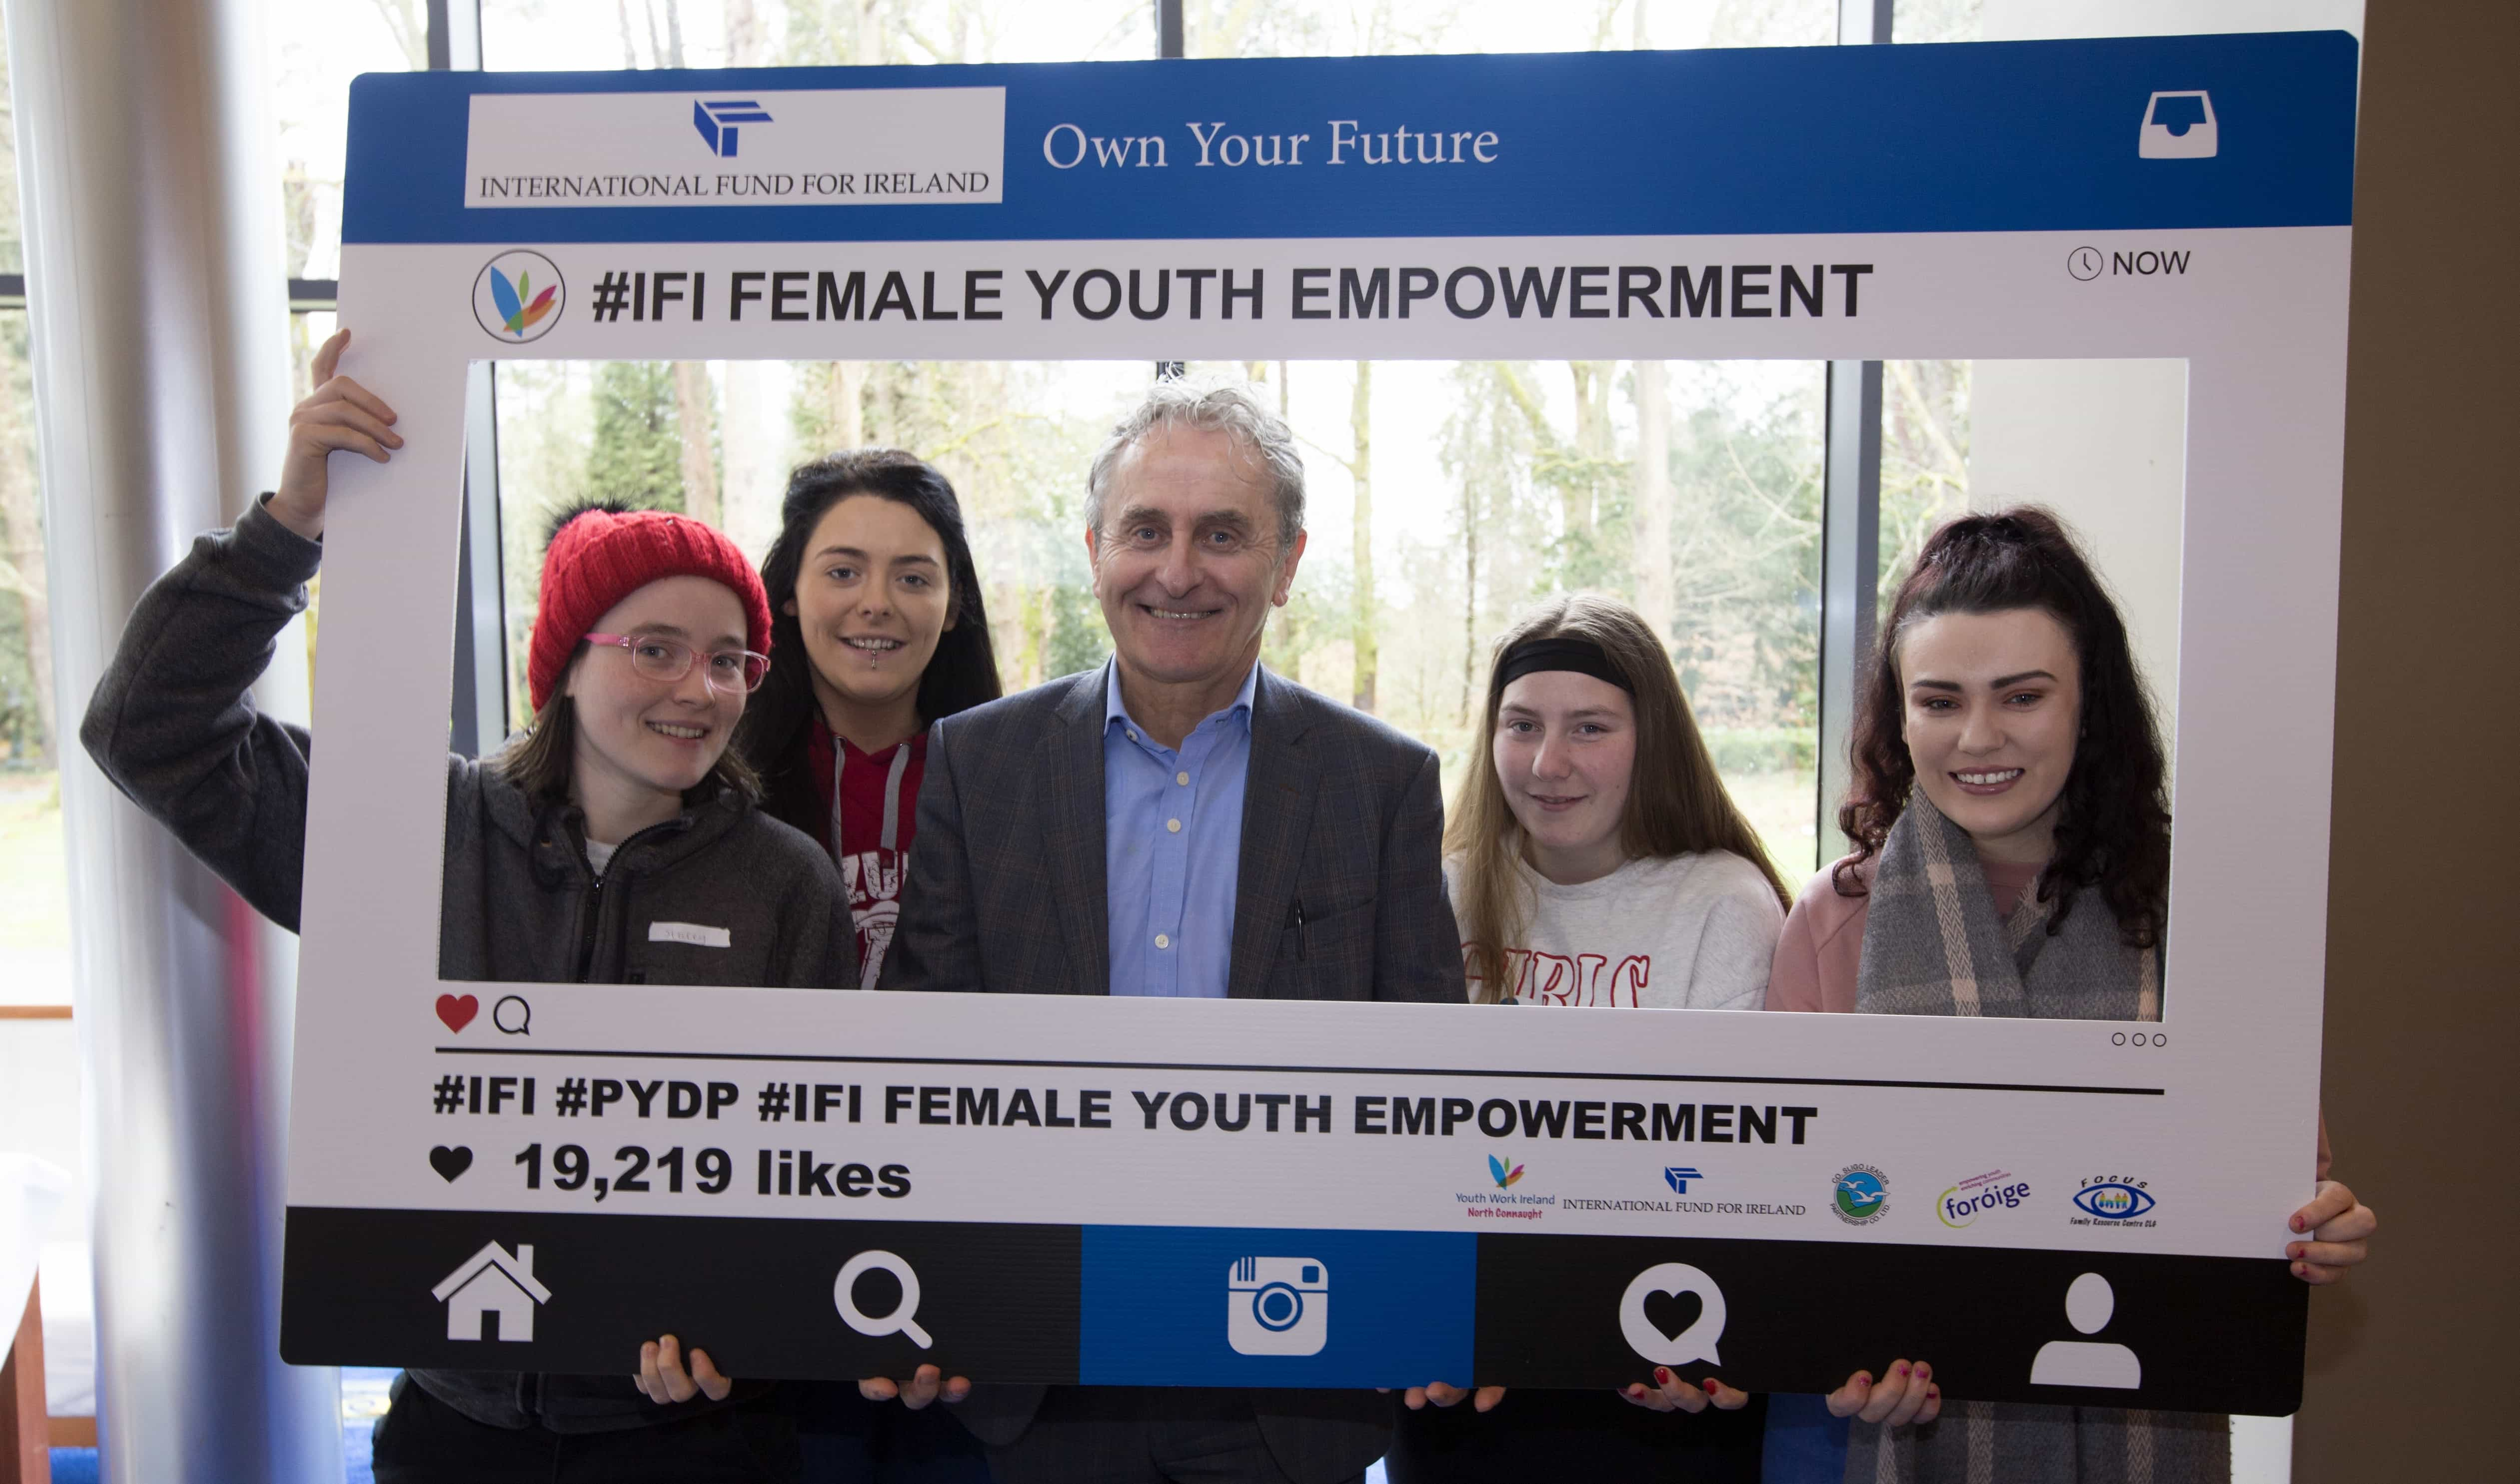 Young Women Encouraged to Own their Future